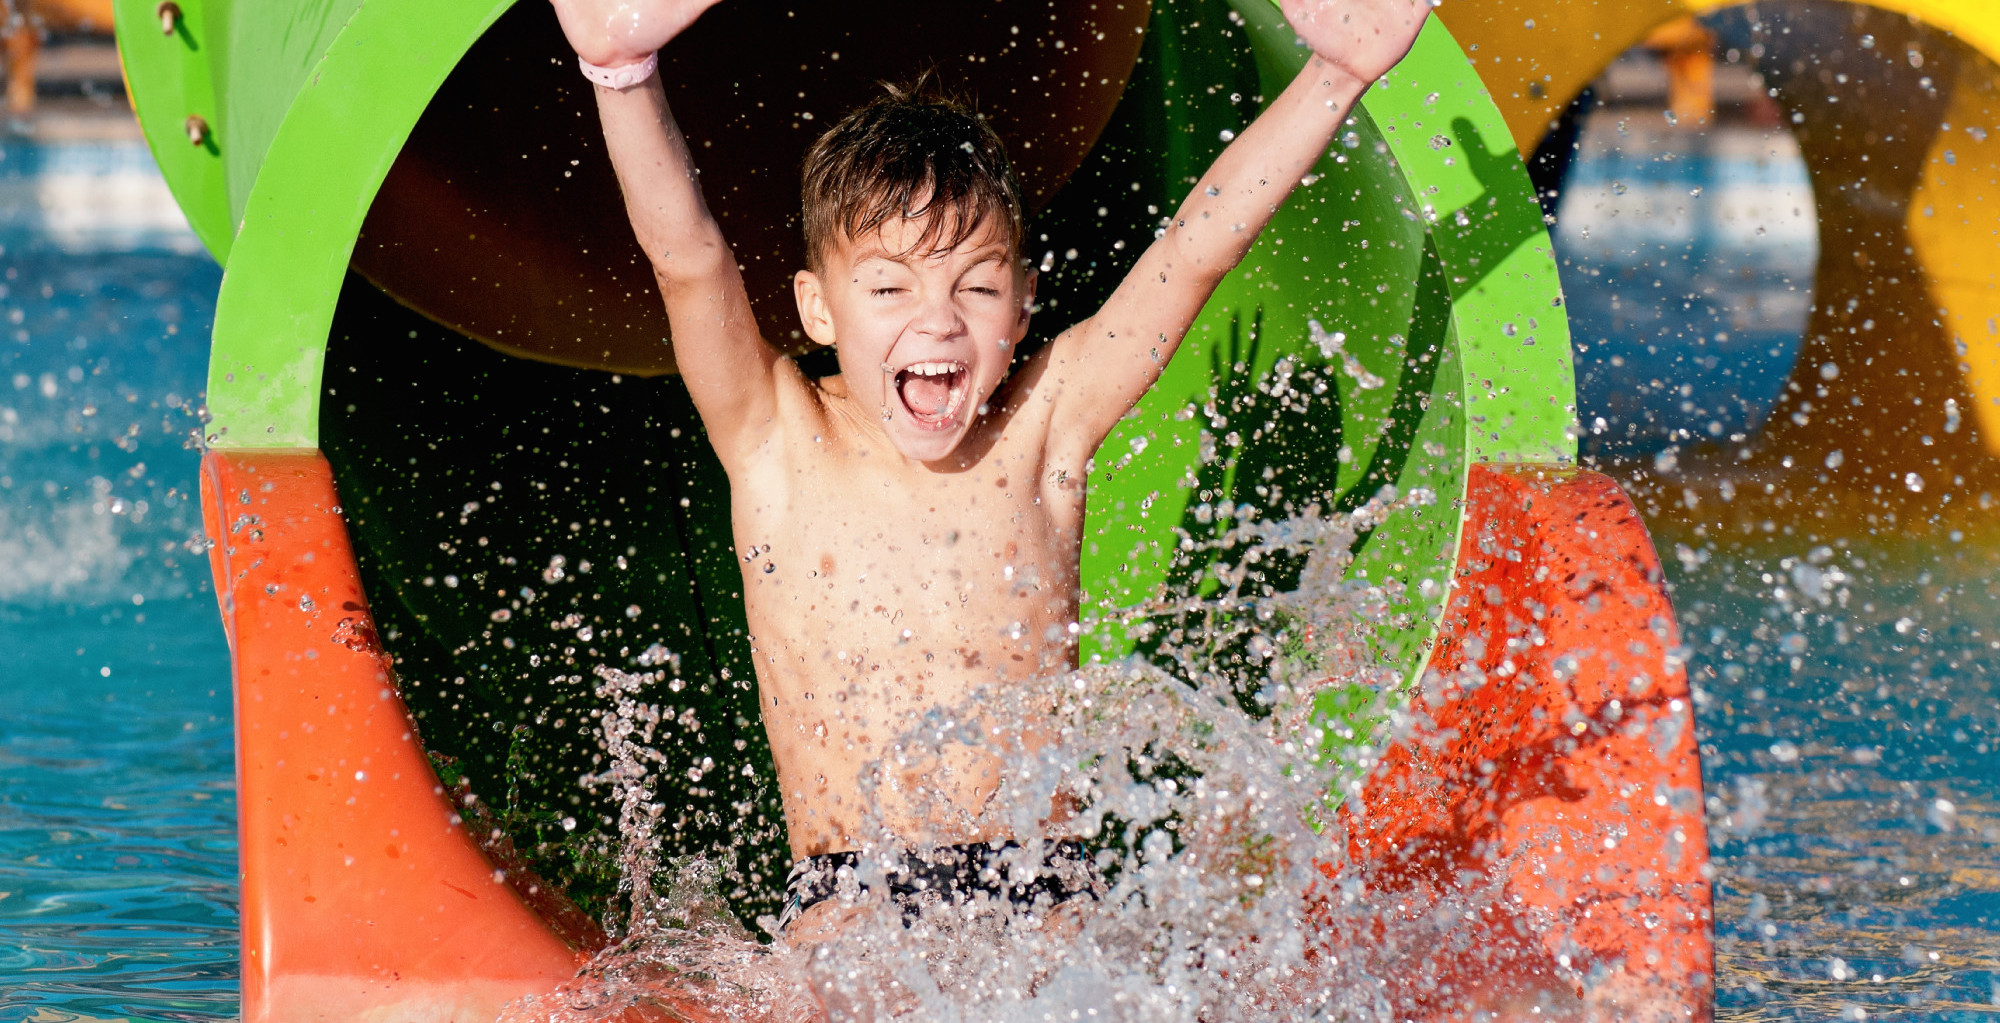 Days out in Yorkshire – Calypso Falls Water Park